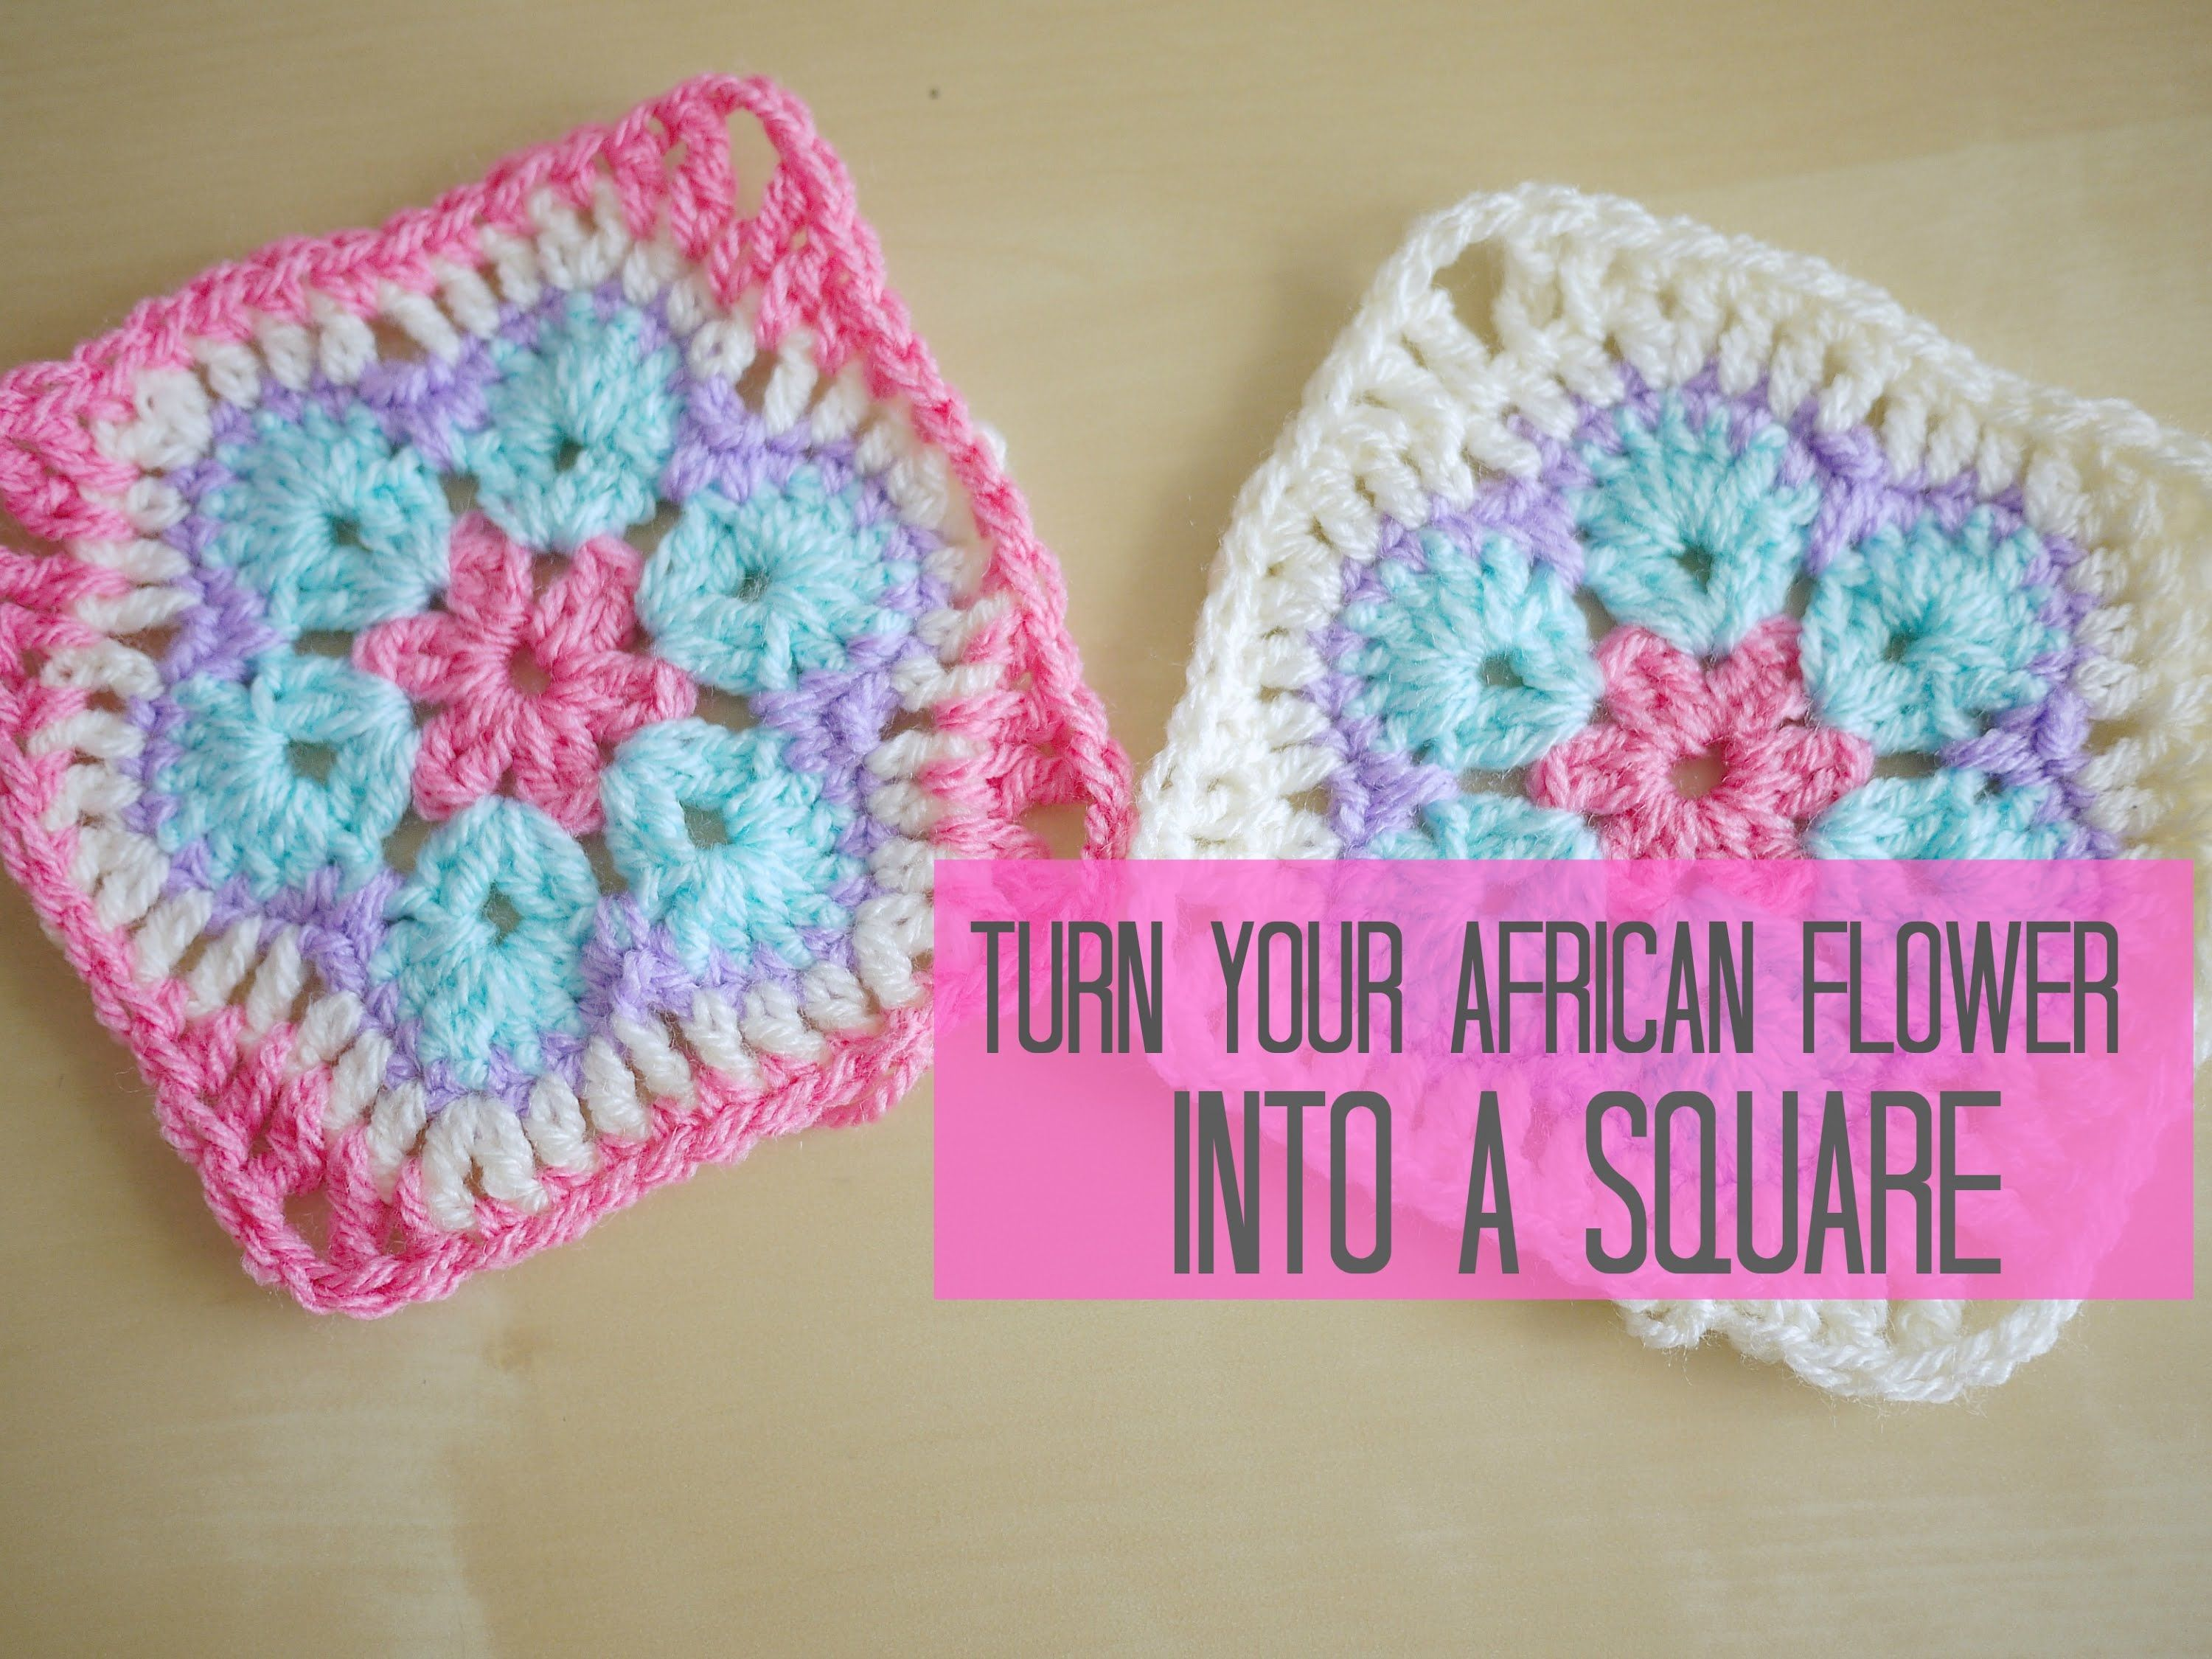 Diy crochet 6 petal puff stitch flower blanket - Crochet African Flower Into A Square Tutorial Bella Coco